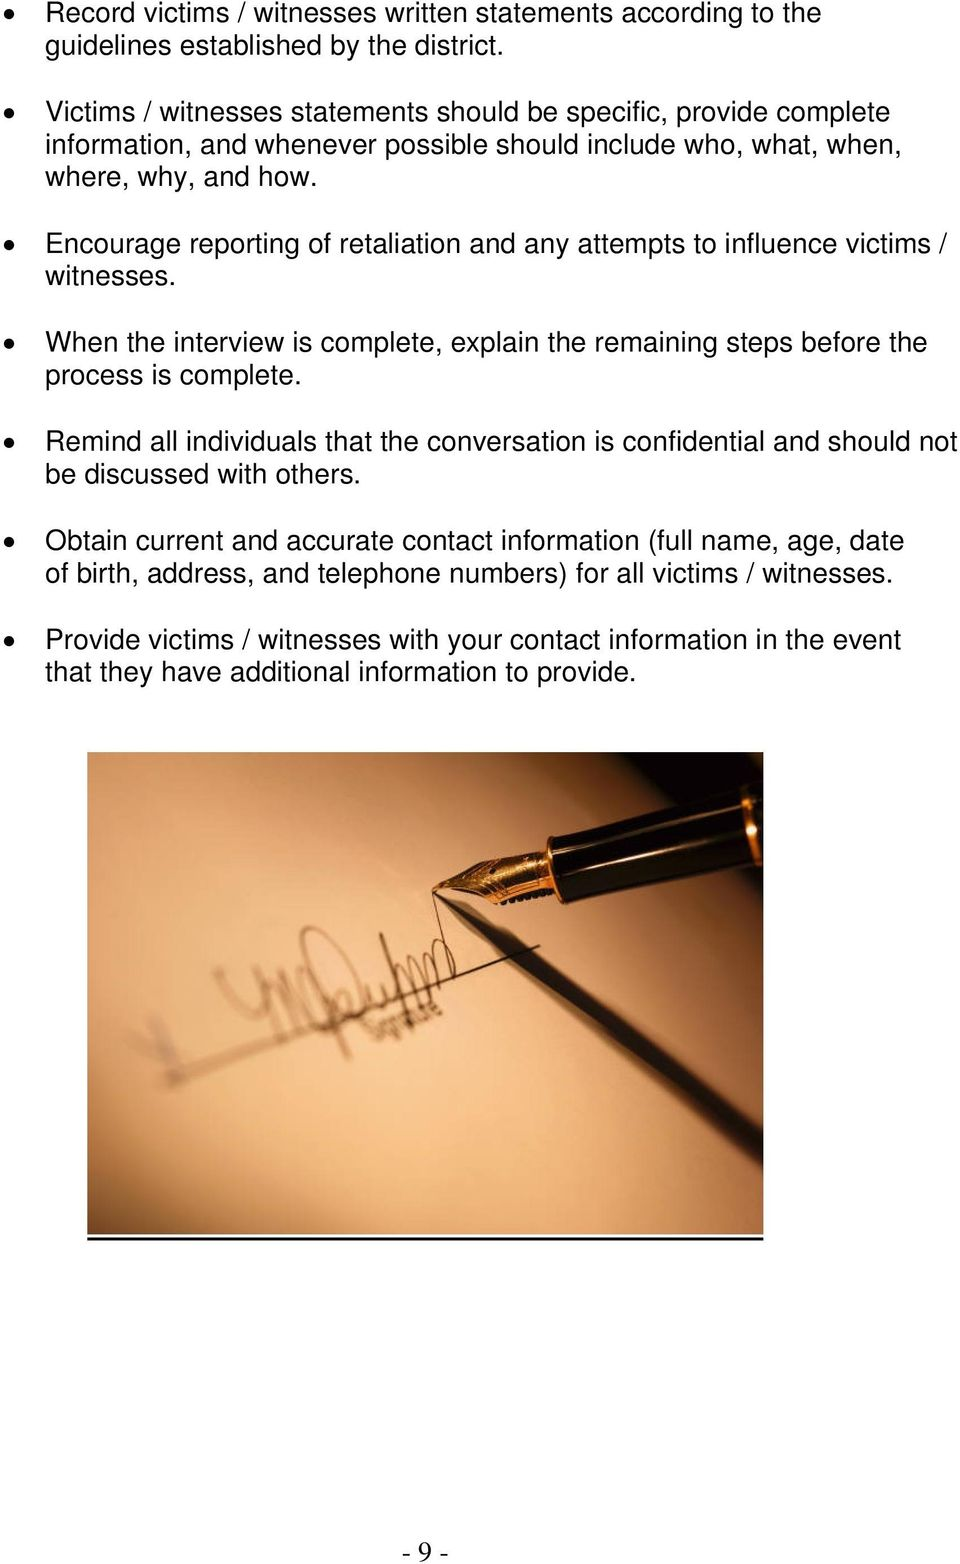 Encourage reporting of retaliation and any attempts to influence victims / witnesses. When the interview is complete, explain the remaining steps before the process is complete.